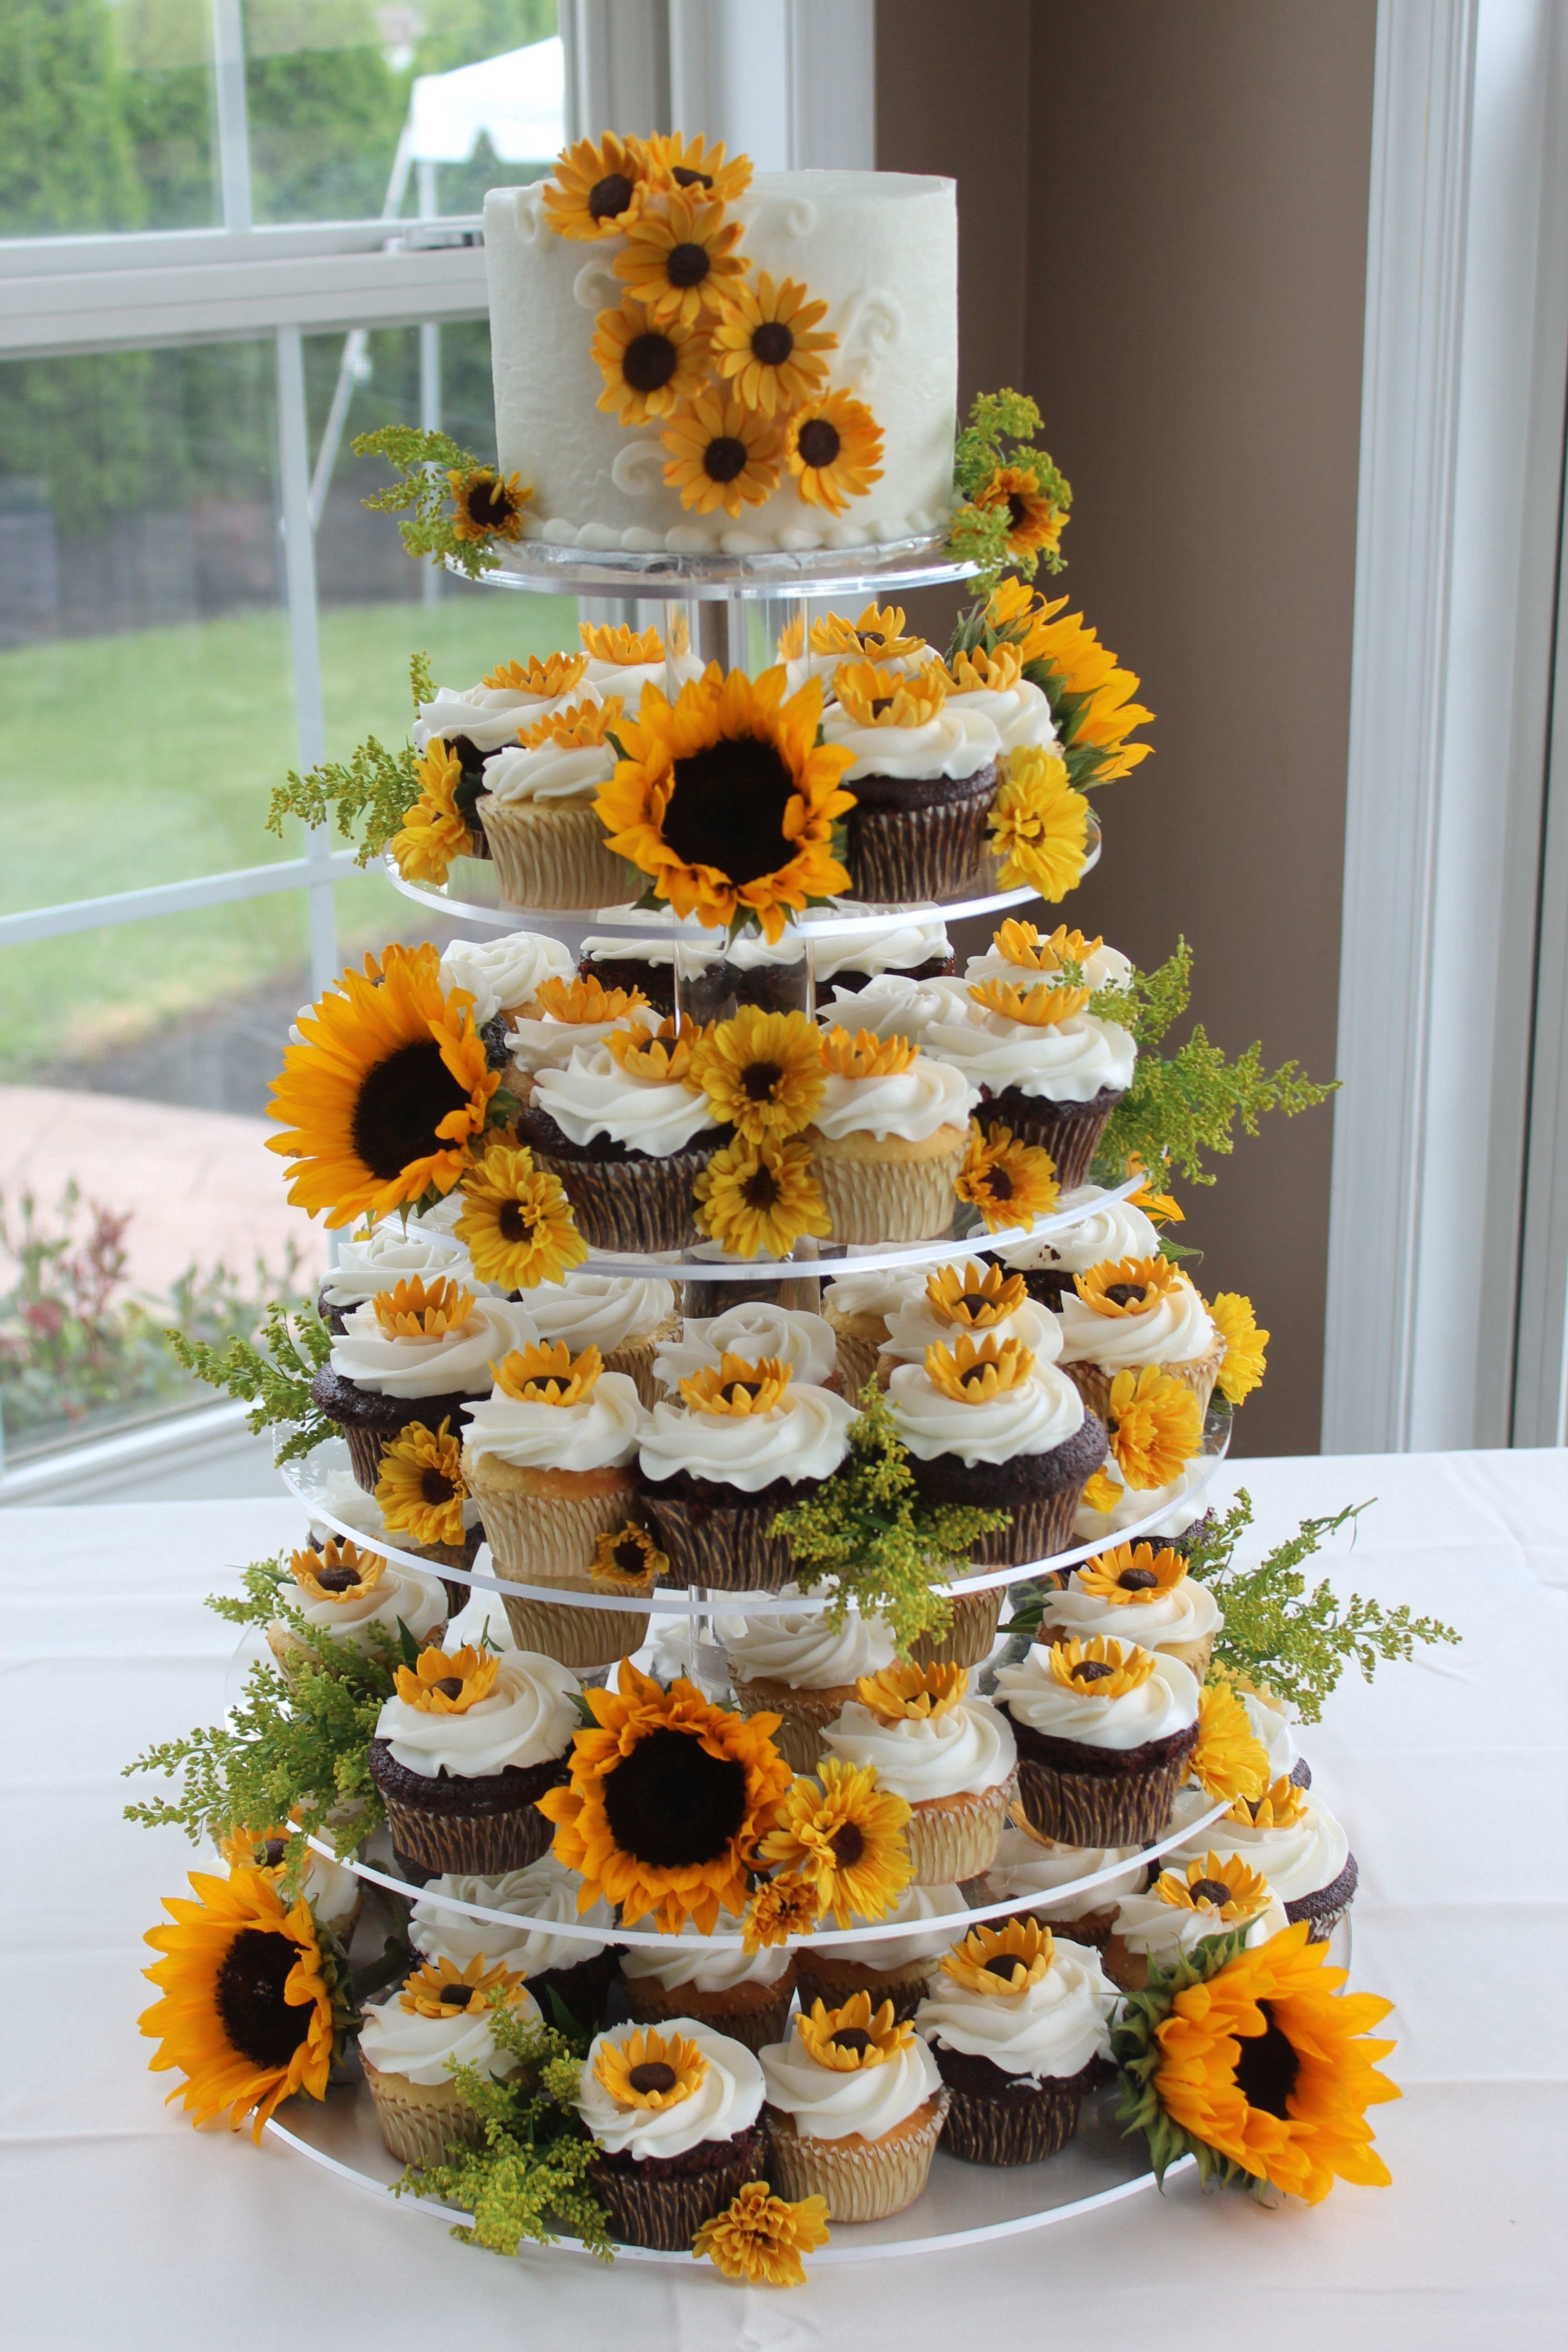 How To Plan A Sunflower Themed Baby Shower - Kinacle